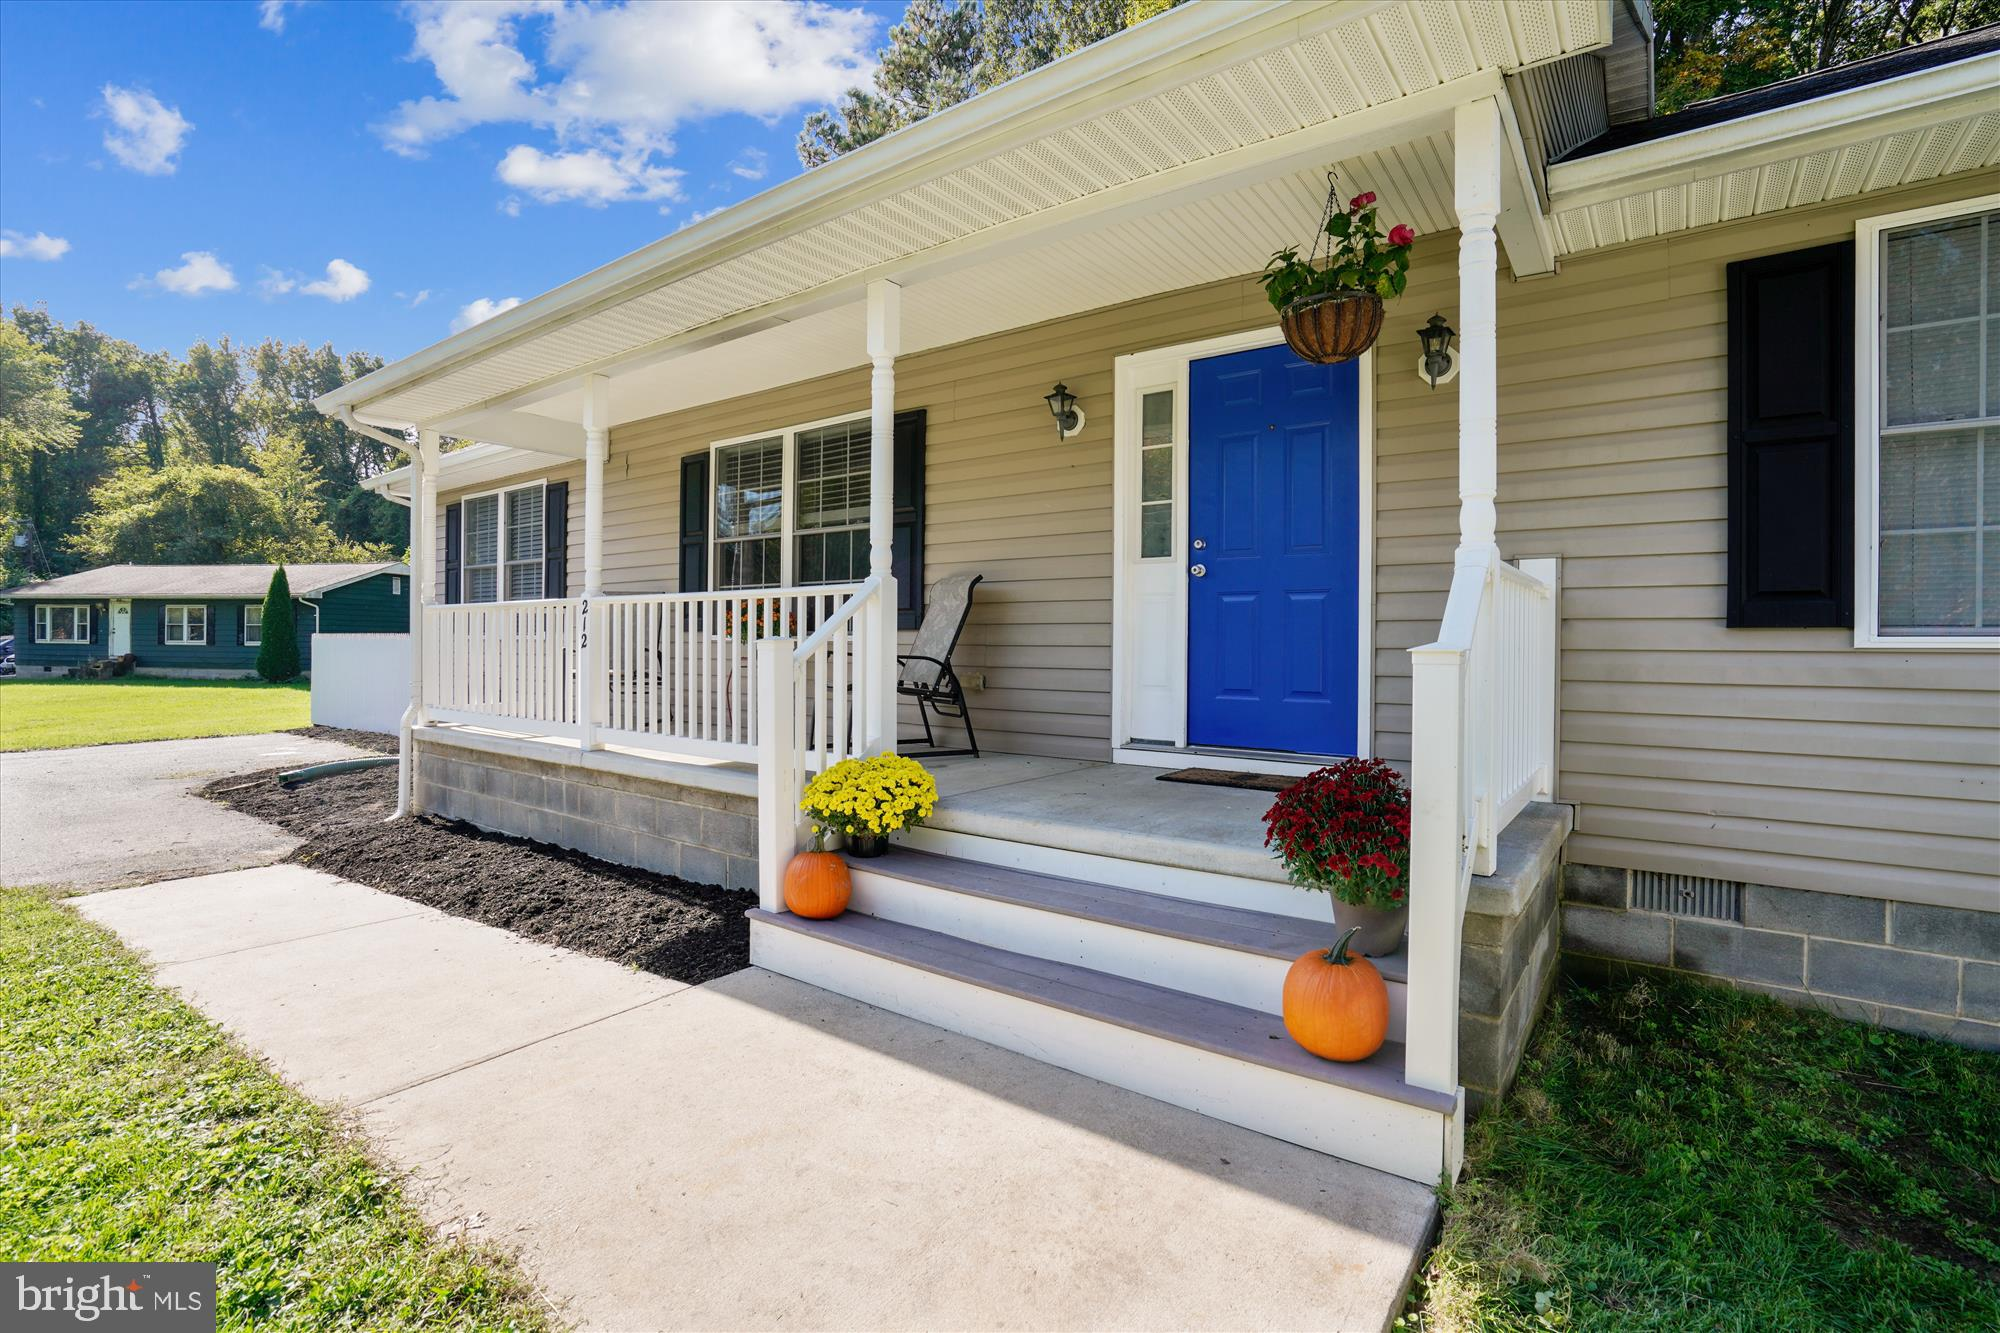 Look no further, wait till you see this newly renovated BEAUTIFUL 3 bedroom 2 bath CHEERY and SPACIO